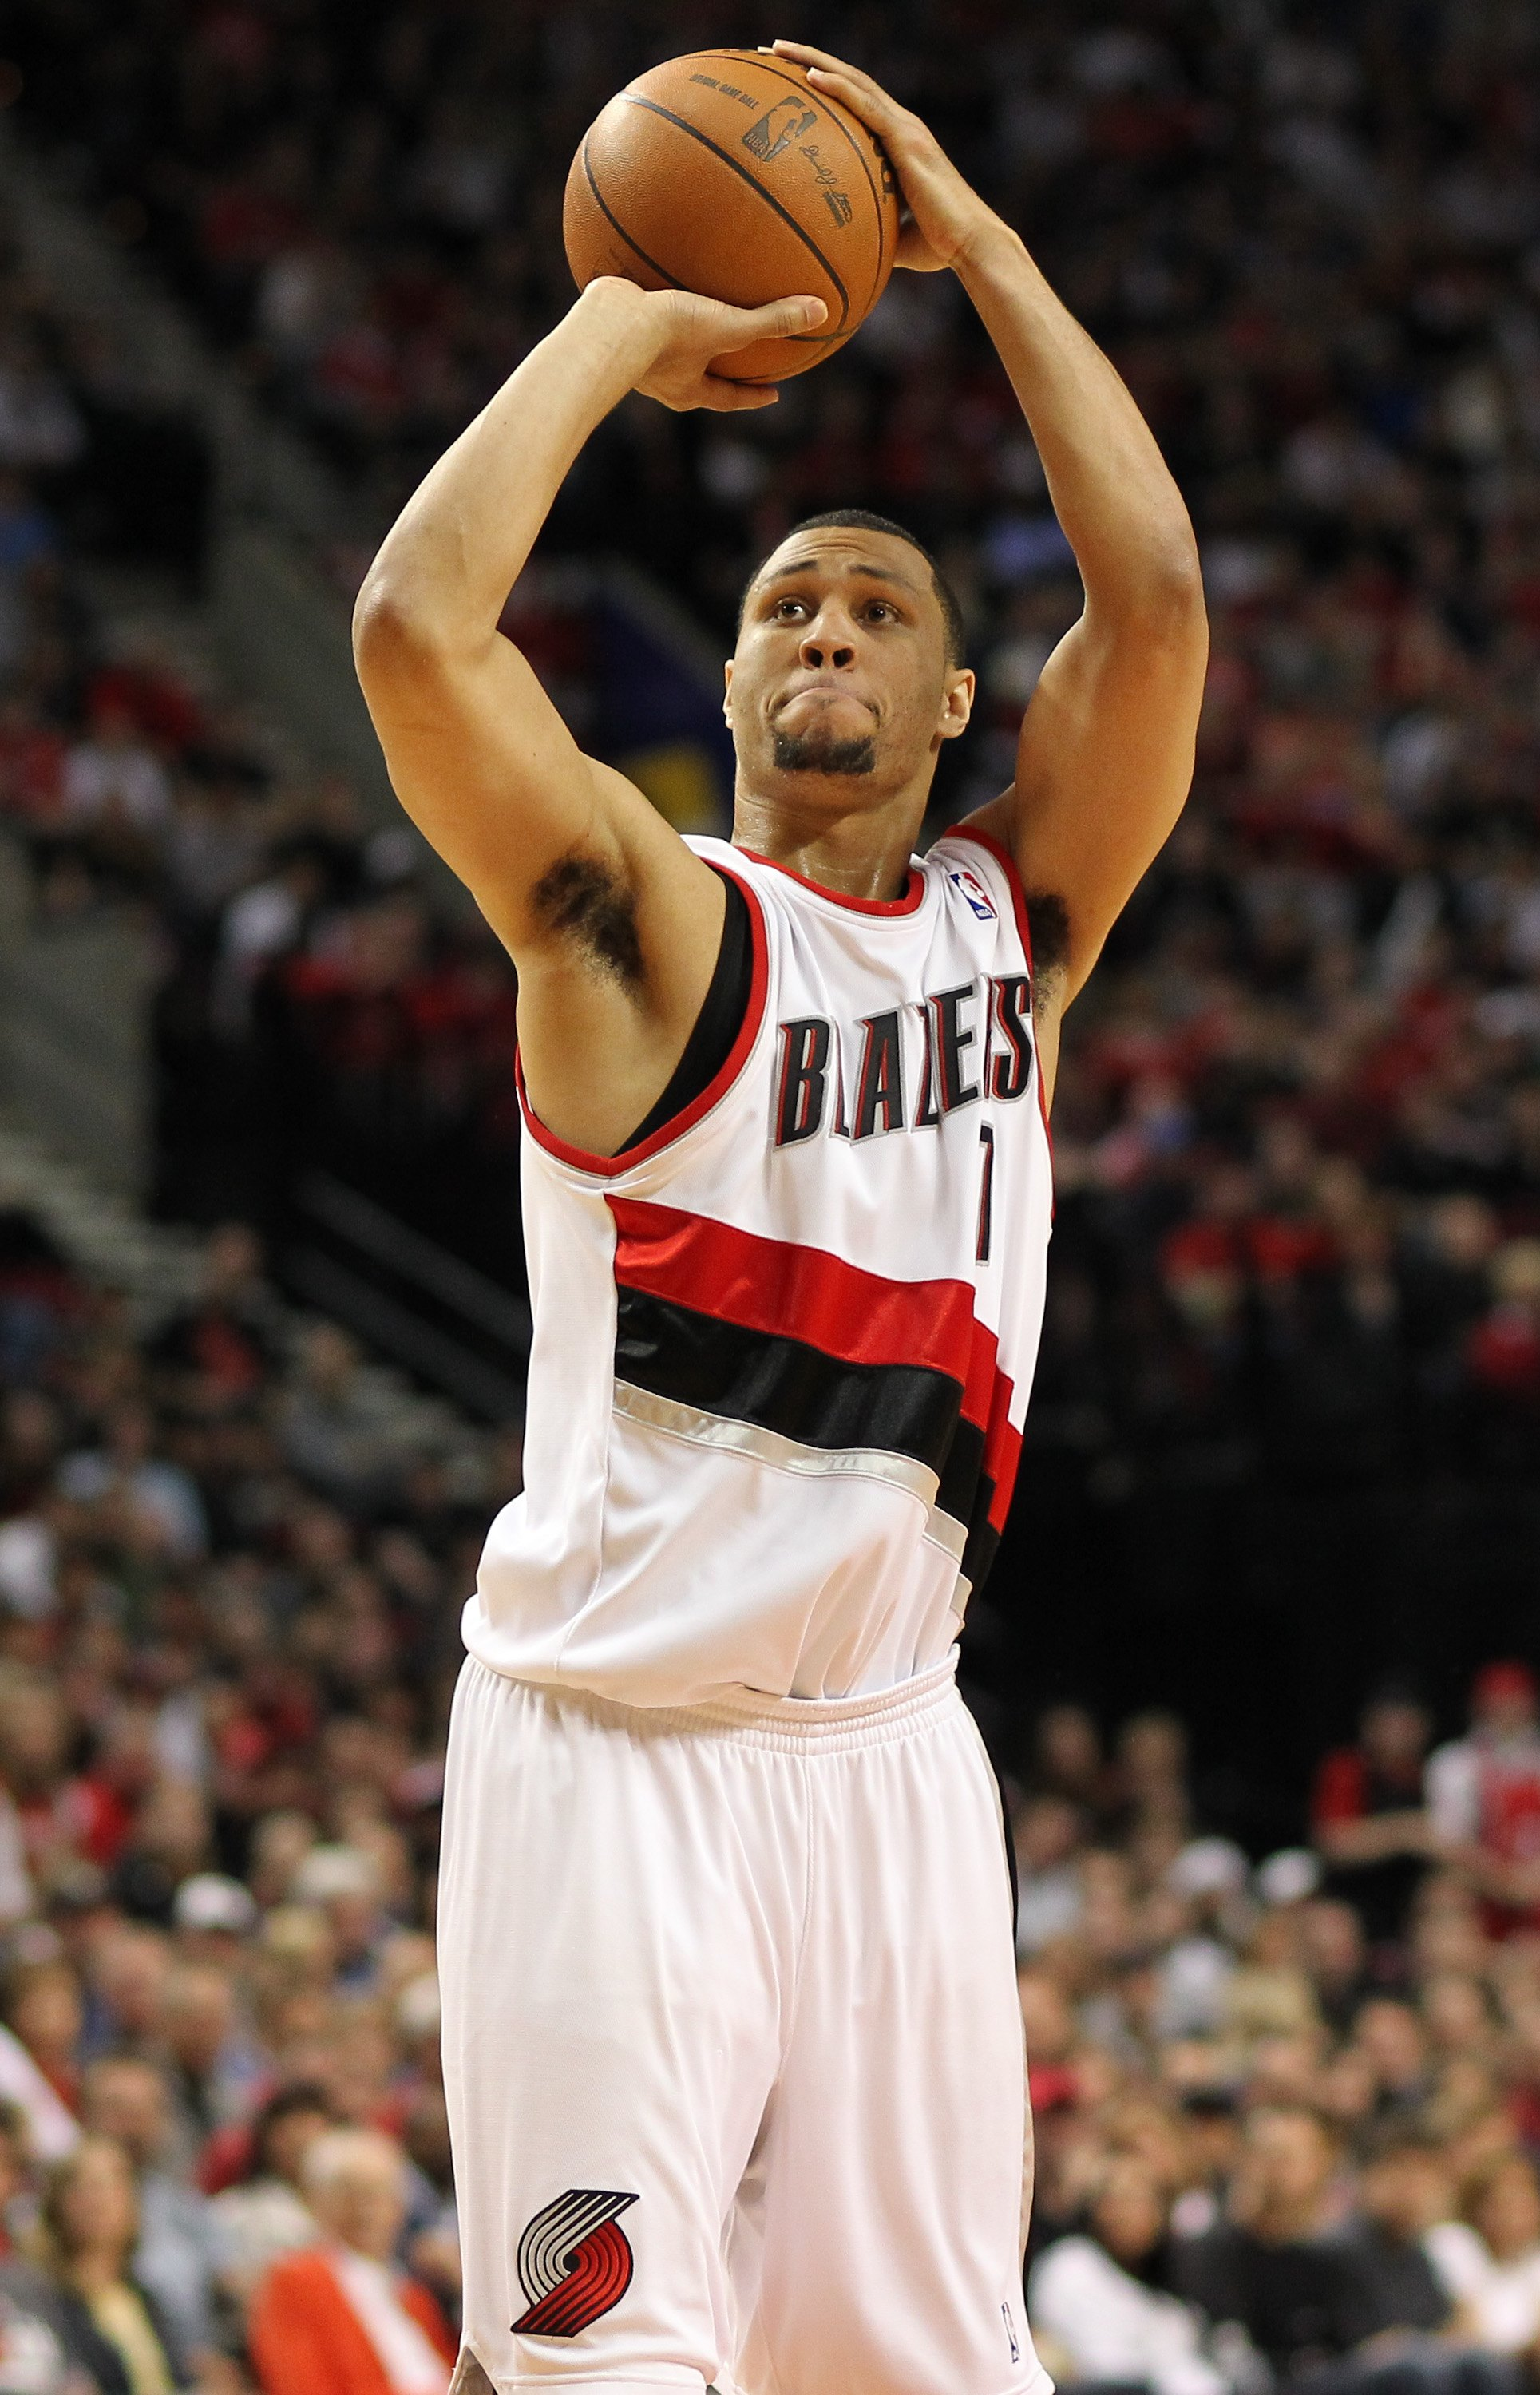 PORTLAND, OR - APRIL 24:  Brandon Roy #7 of the Portland Trail Blazers in action against the Phoenix Suns during Game Four of the Western Conference Quarterfinals of the NBA Playoffs on April 24, 2010 at the Rose Garden in Portland, Oregon. The Blazers de